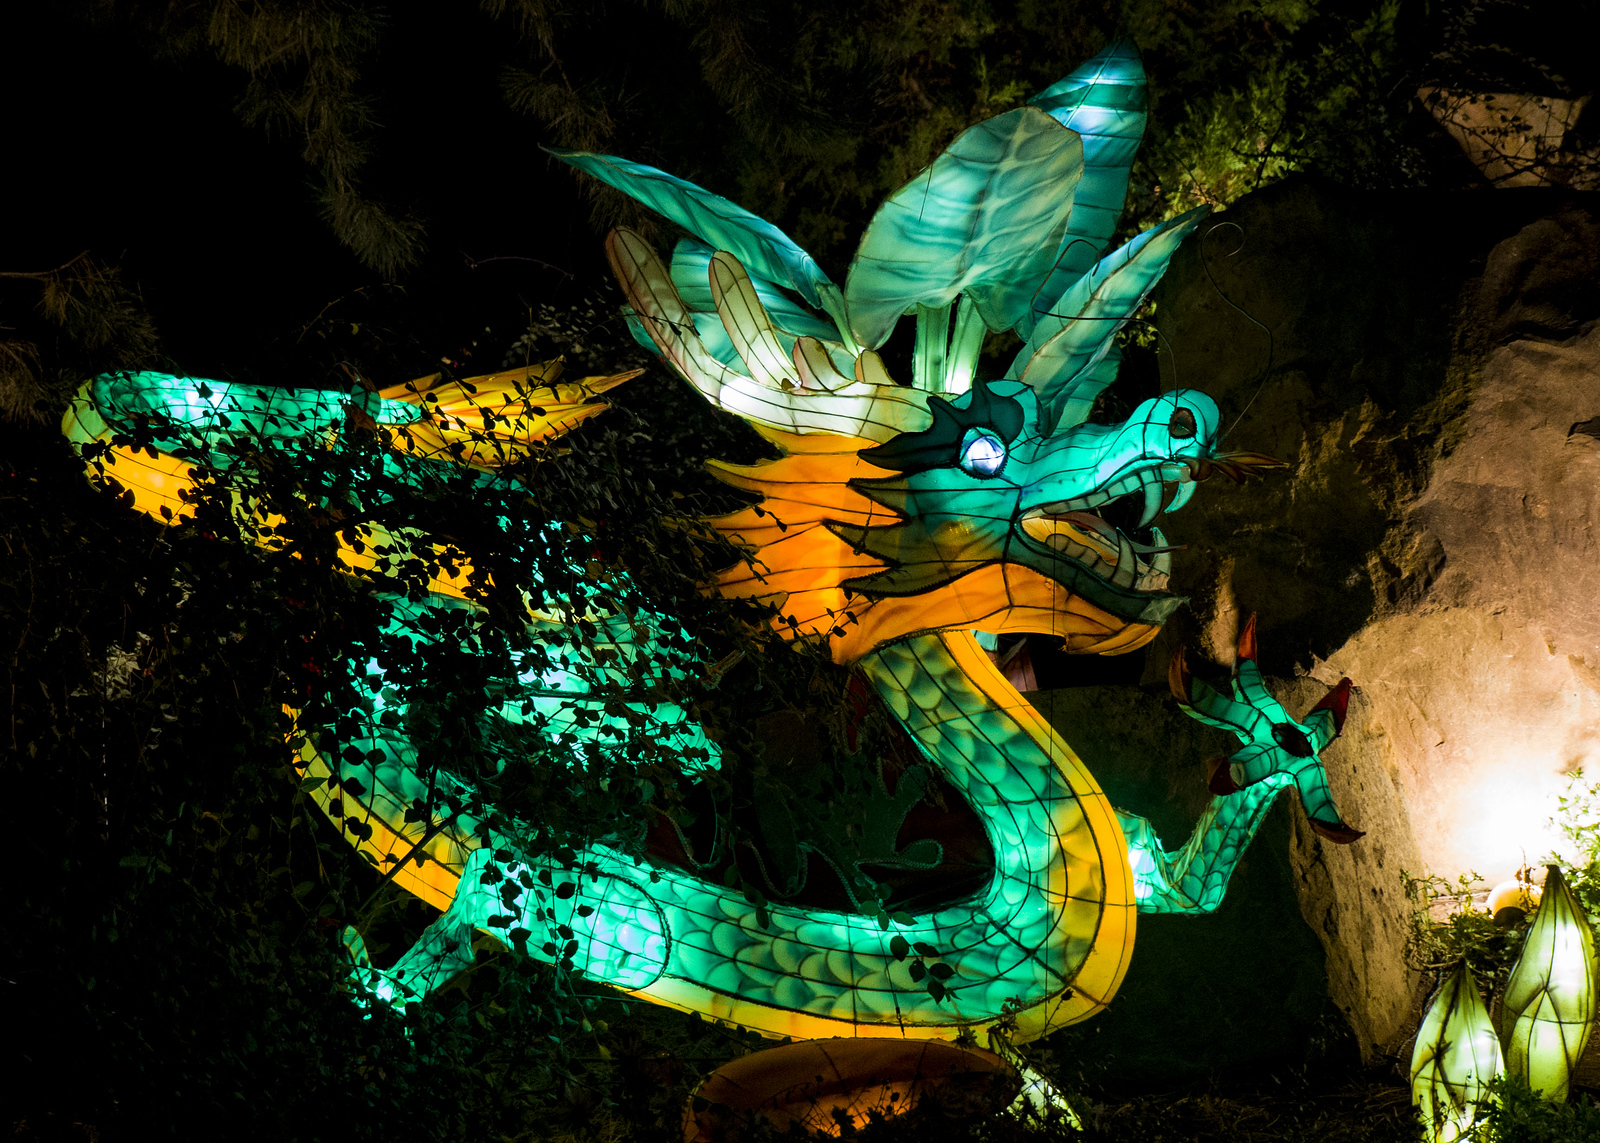 Montreal Lantern Festival - Explore the Gardens of Light